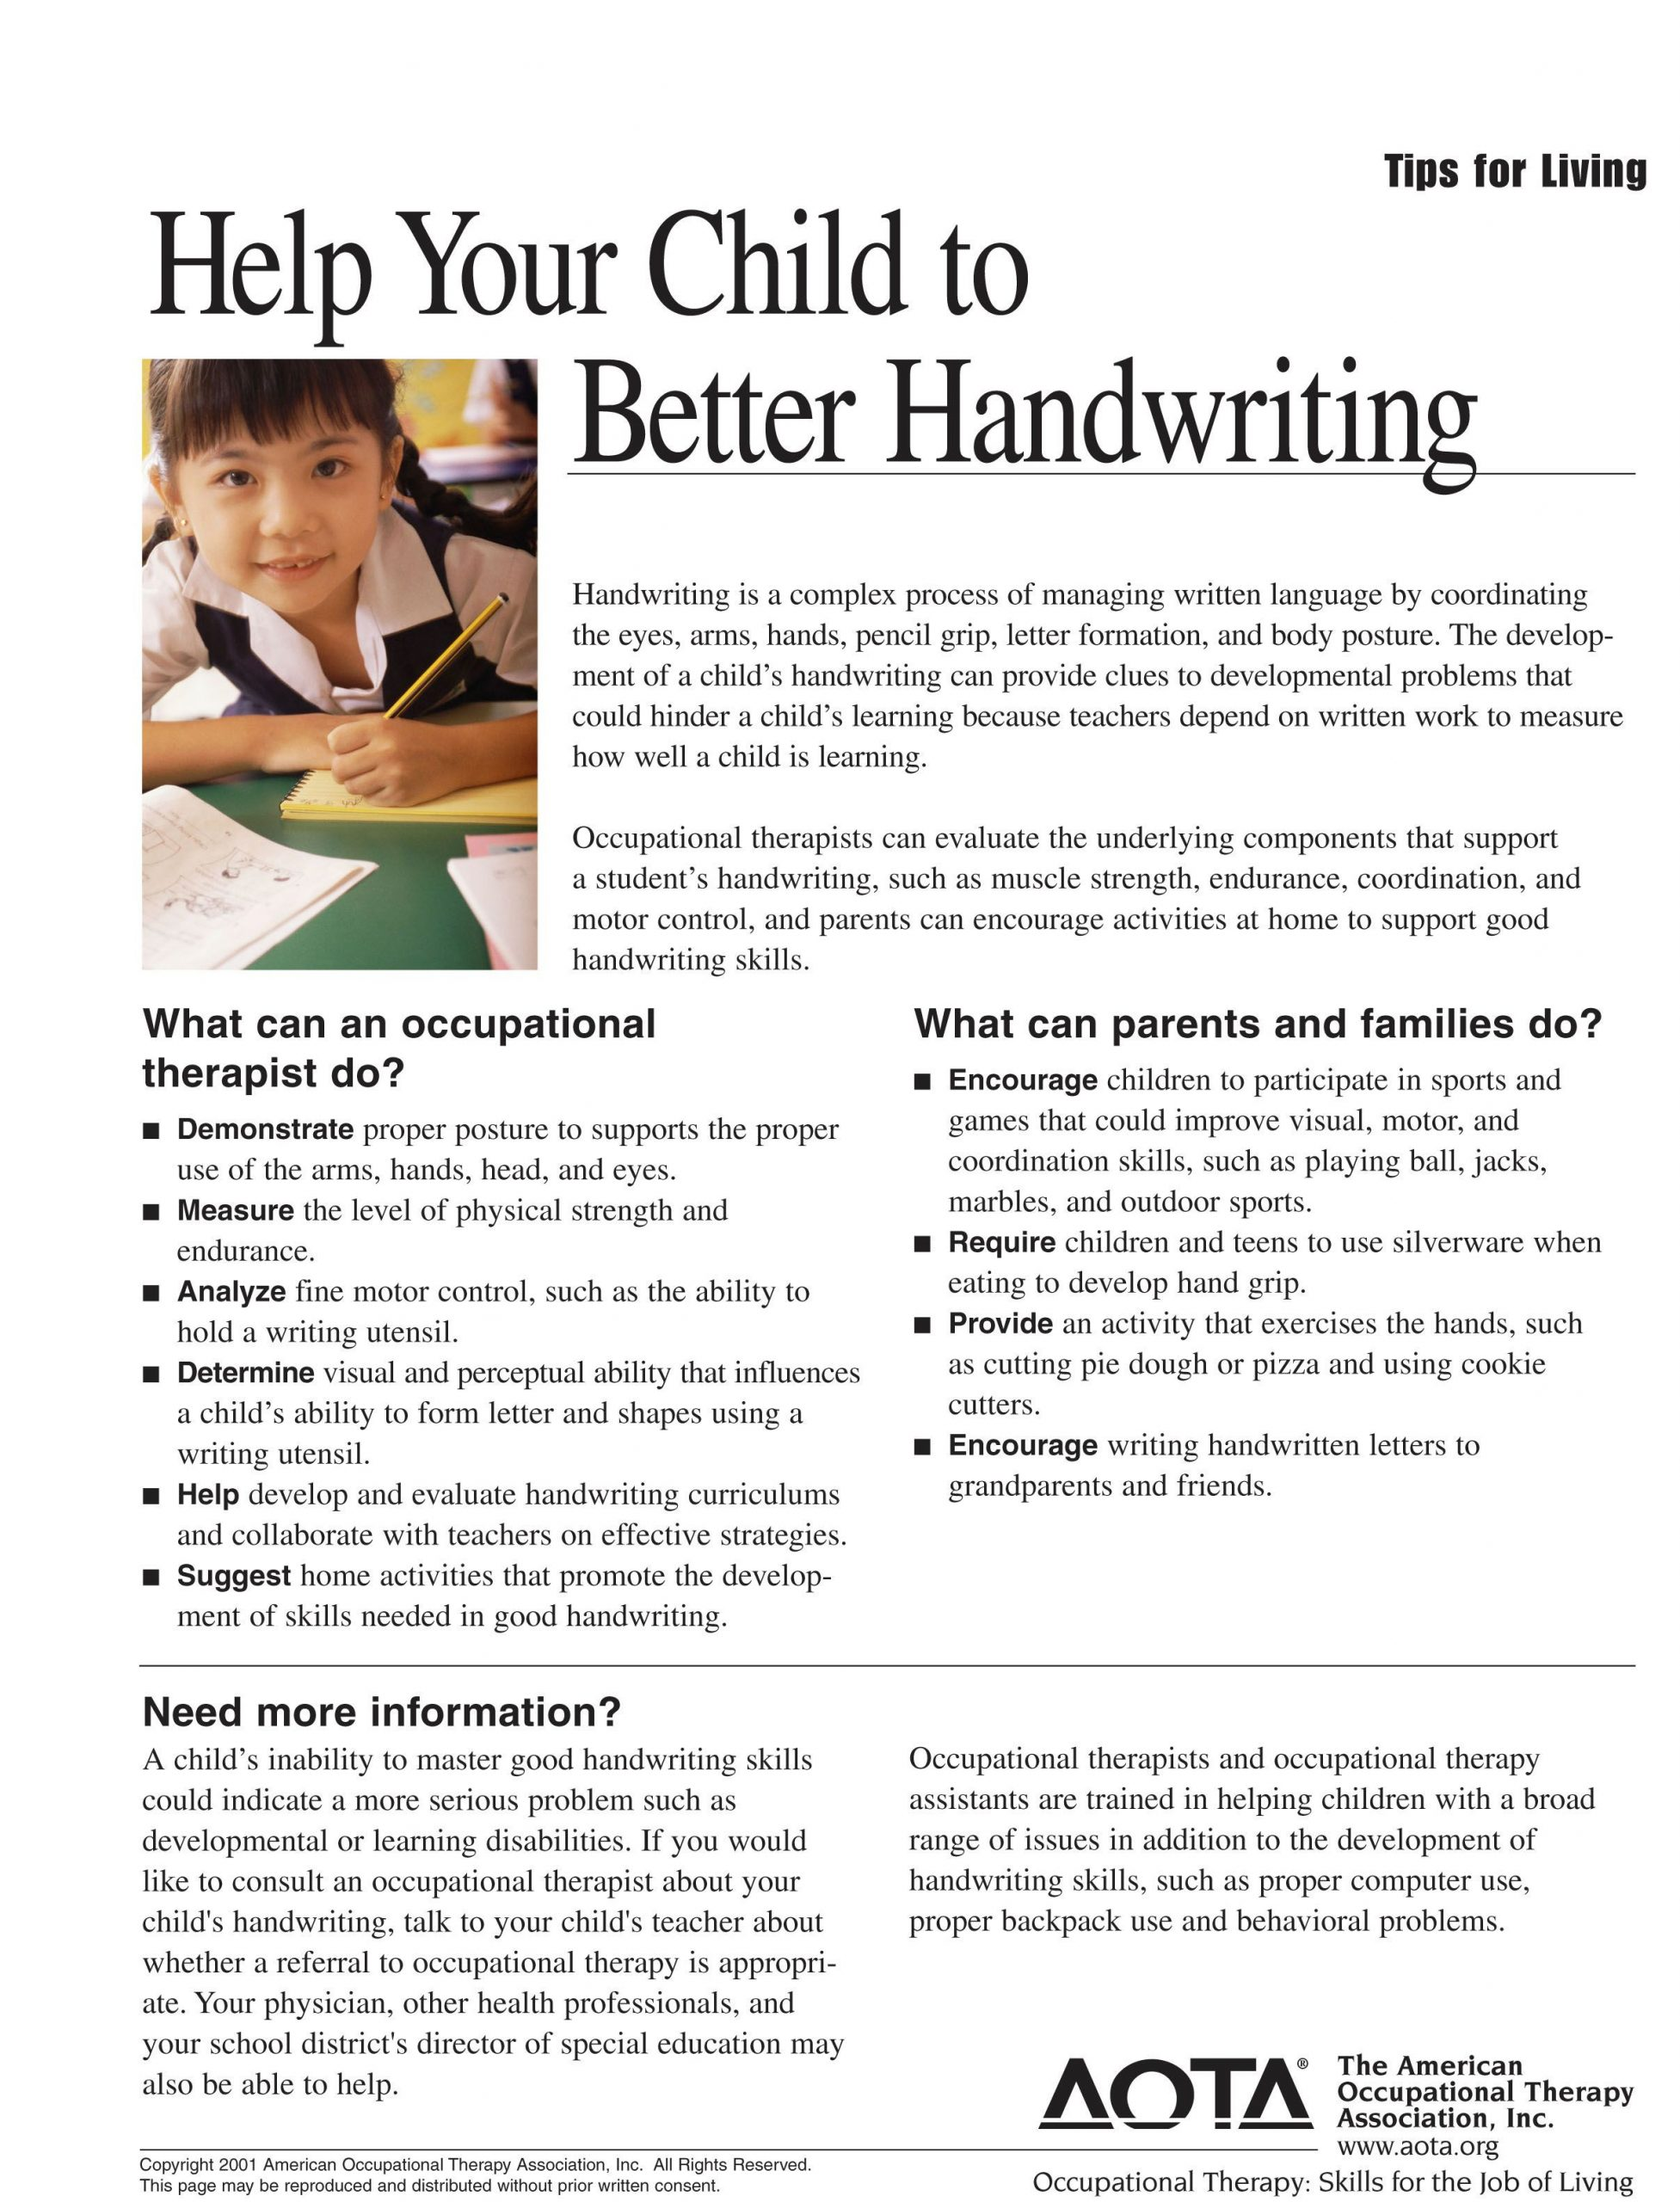 Occupational therapy Handwriting Worksheets This Handwriting Worksheet Shows What Occupational